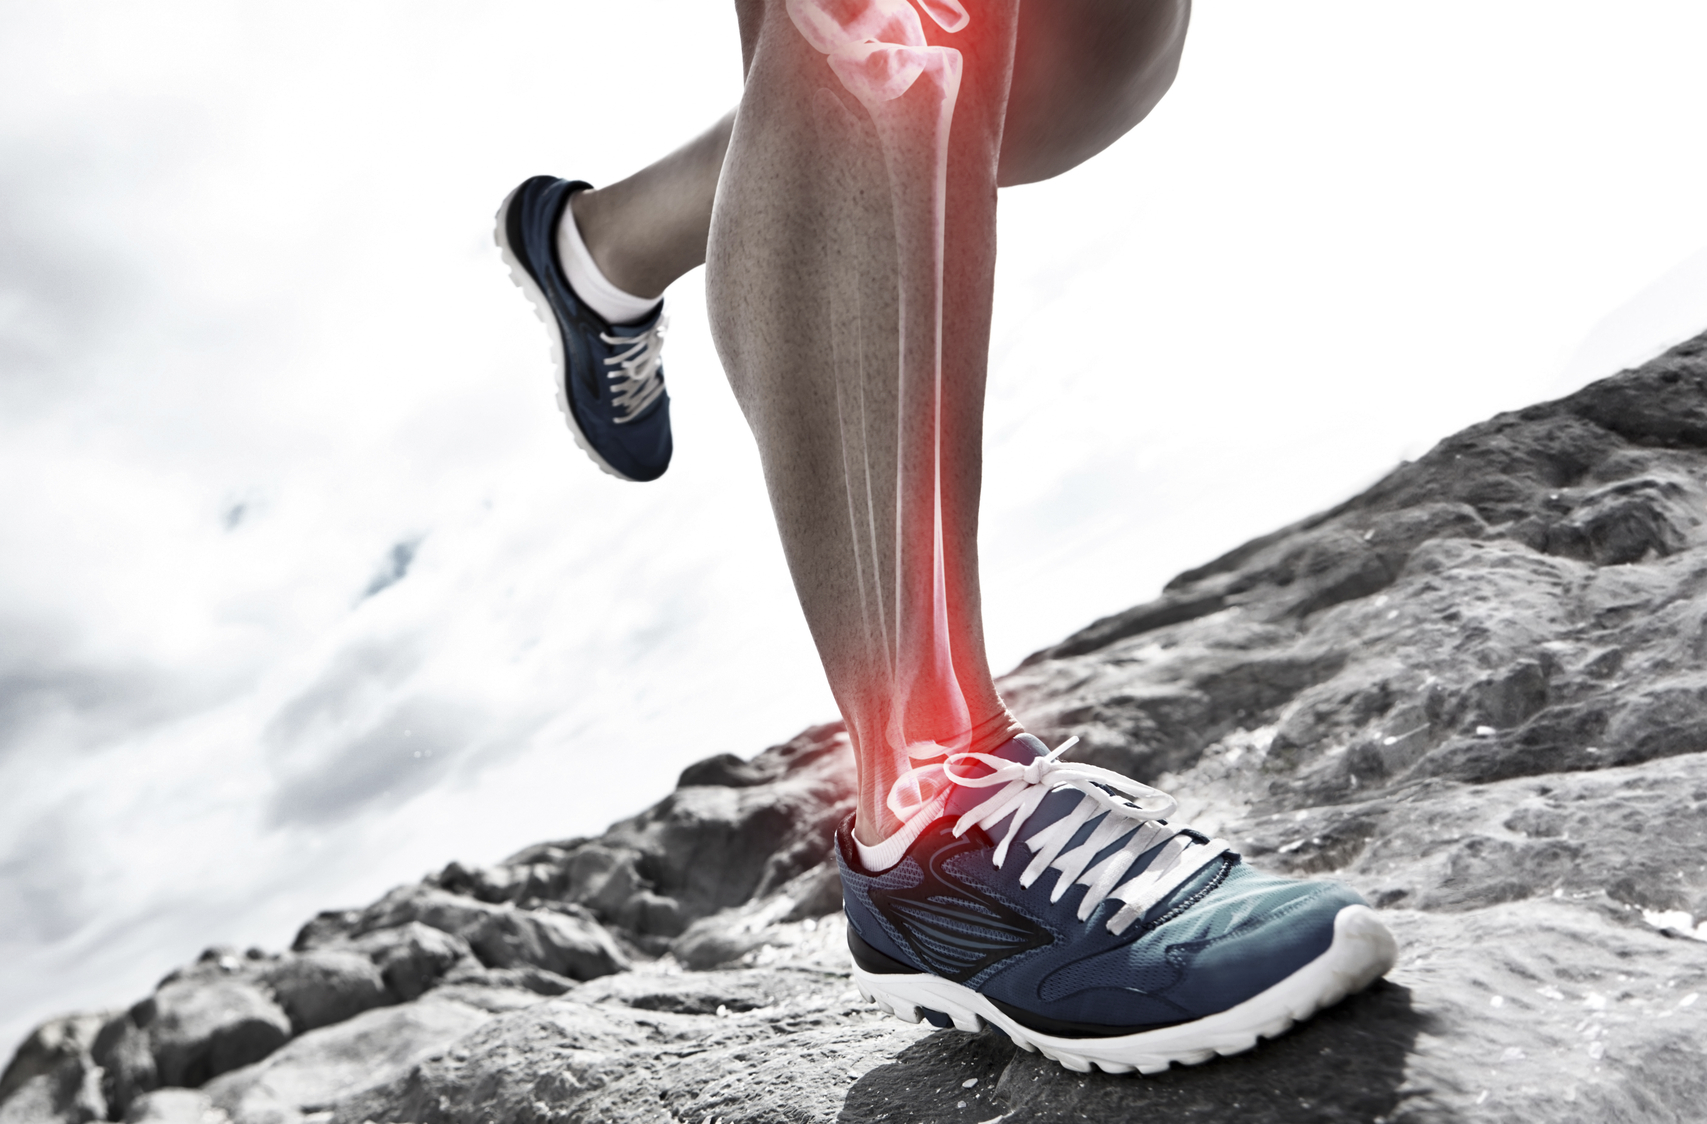 Prevent Ankle Injuries